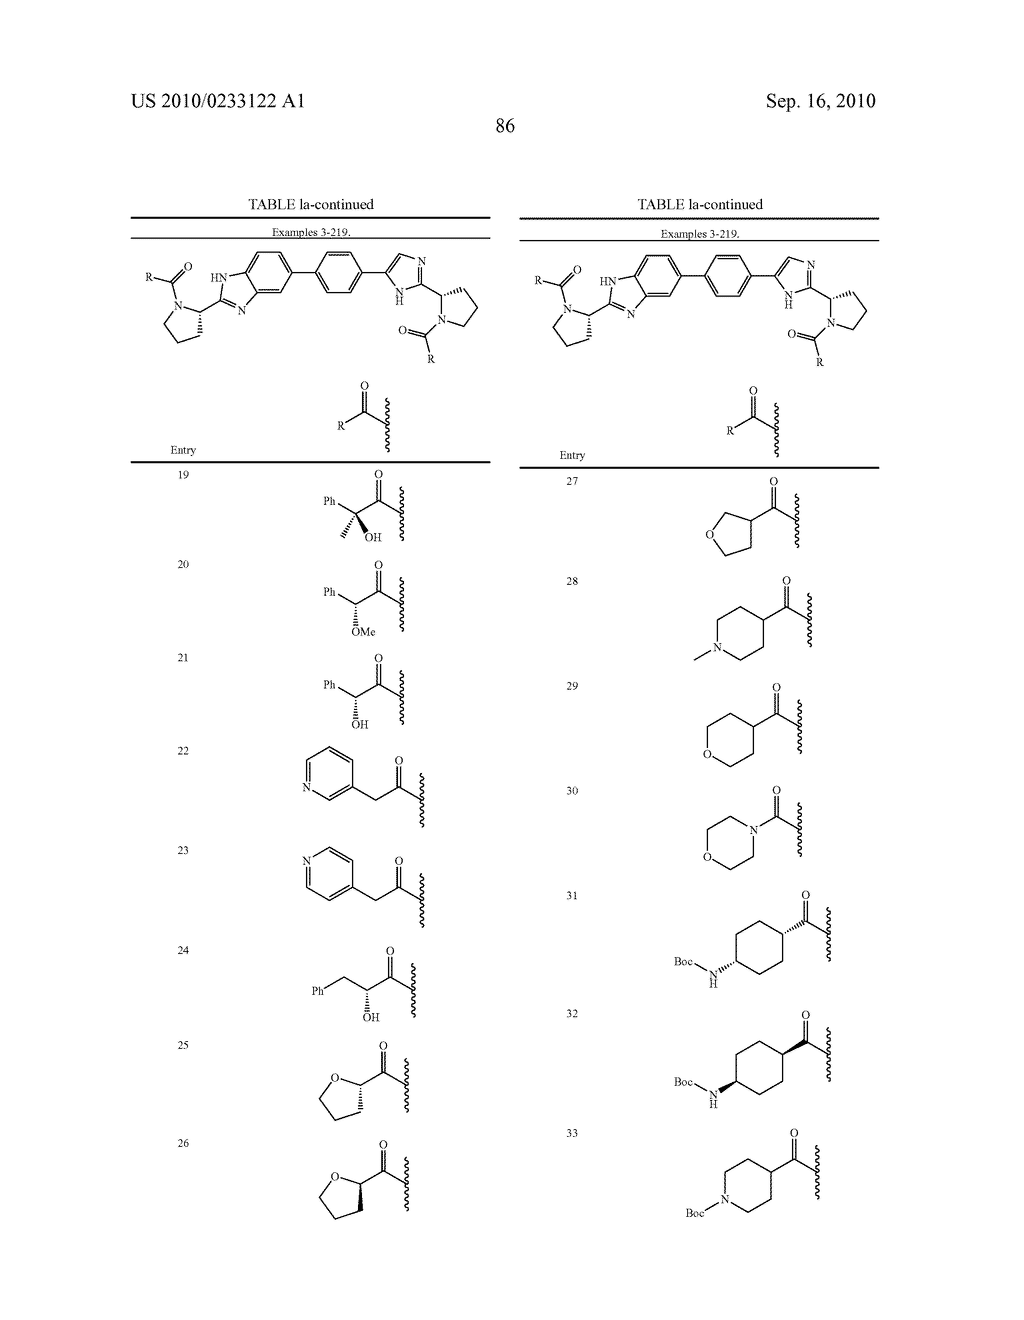 NOVEL BENZIMIDAZOLE DERIVATIVES - diagram, schematic, and image 87